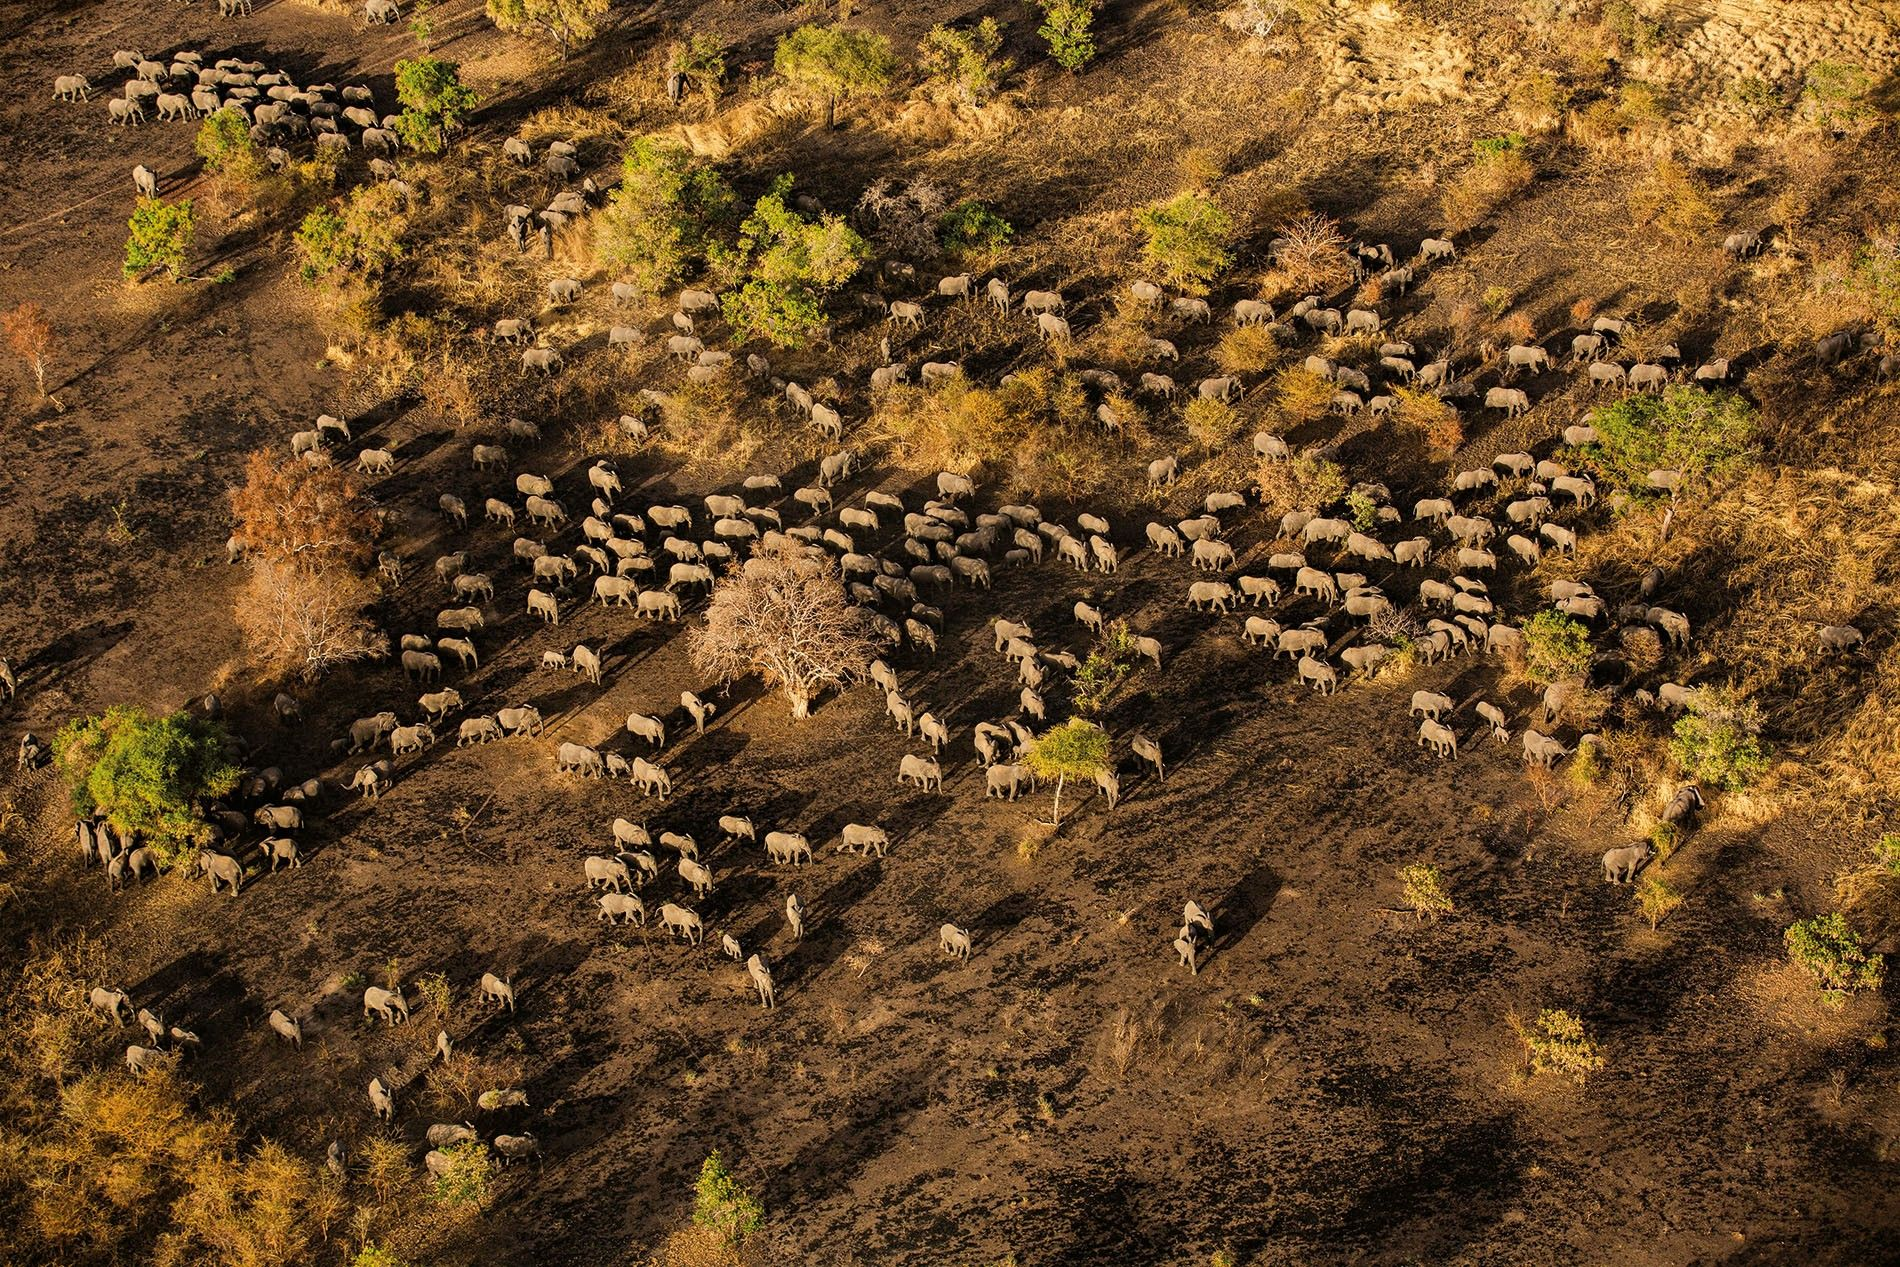 A herd of several hundred elephants heads toward a watering hole in Chad's Zakouma National Park.